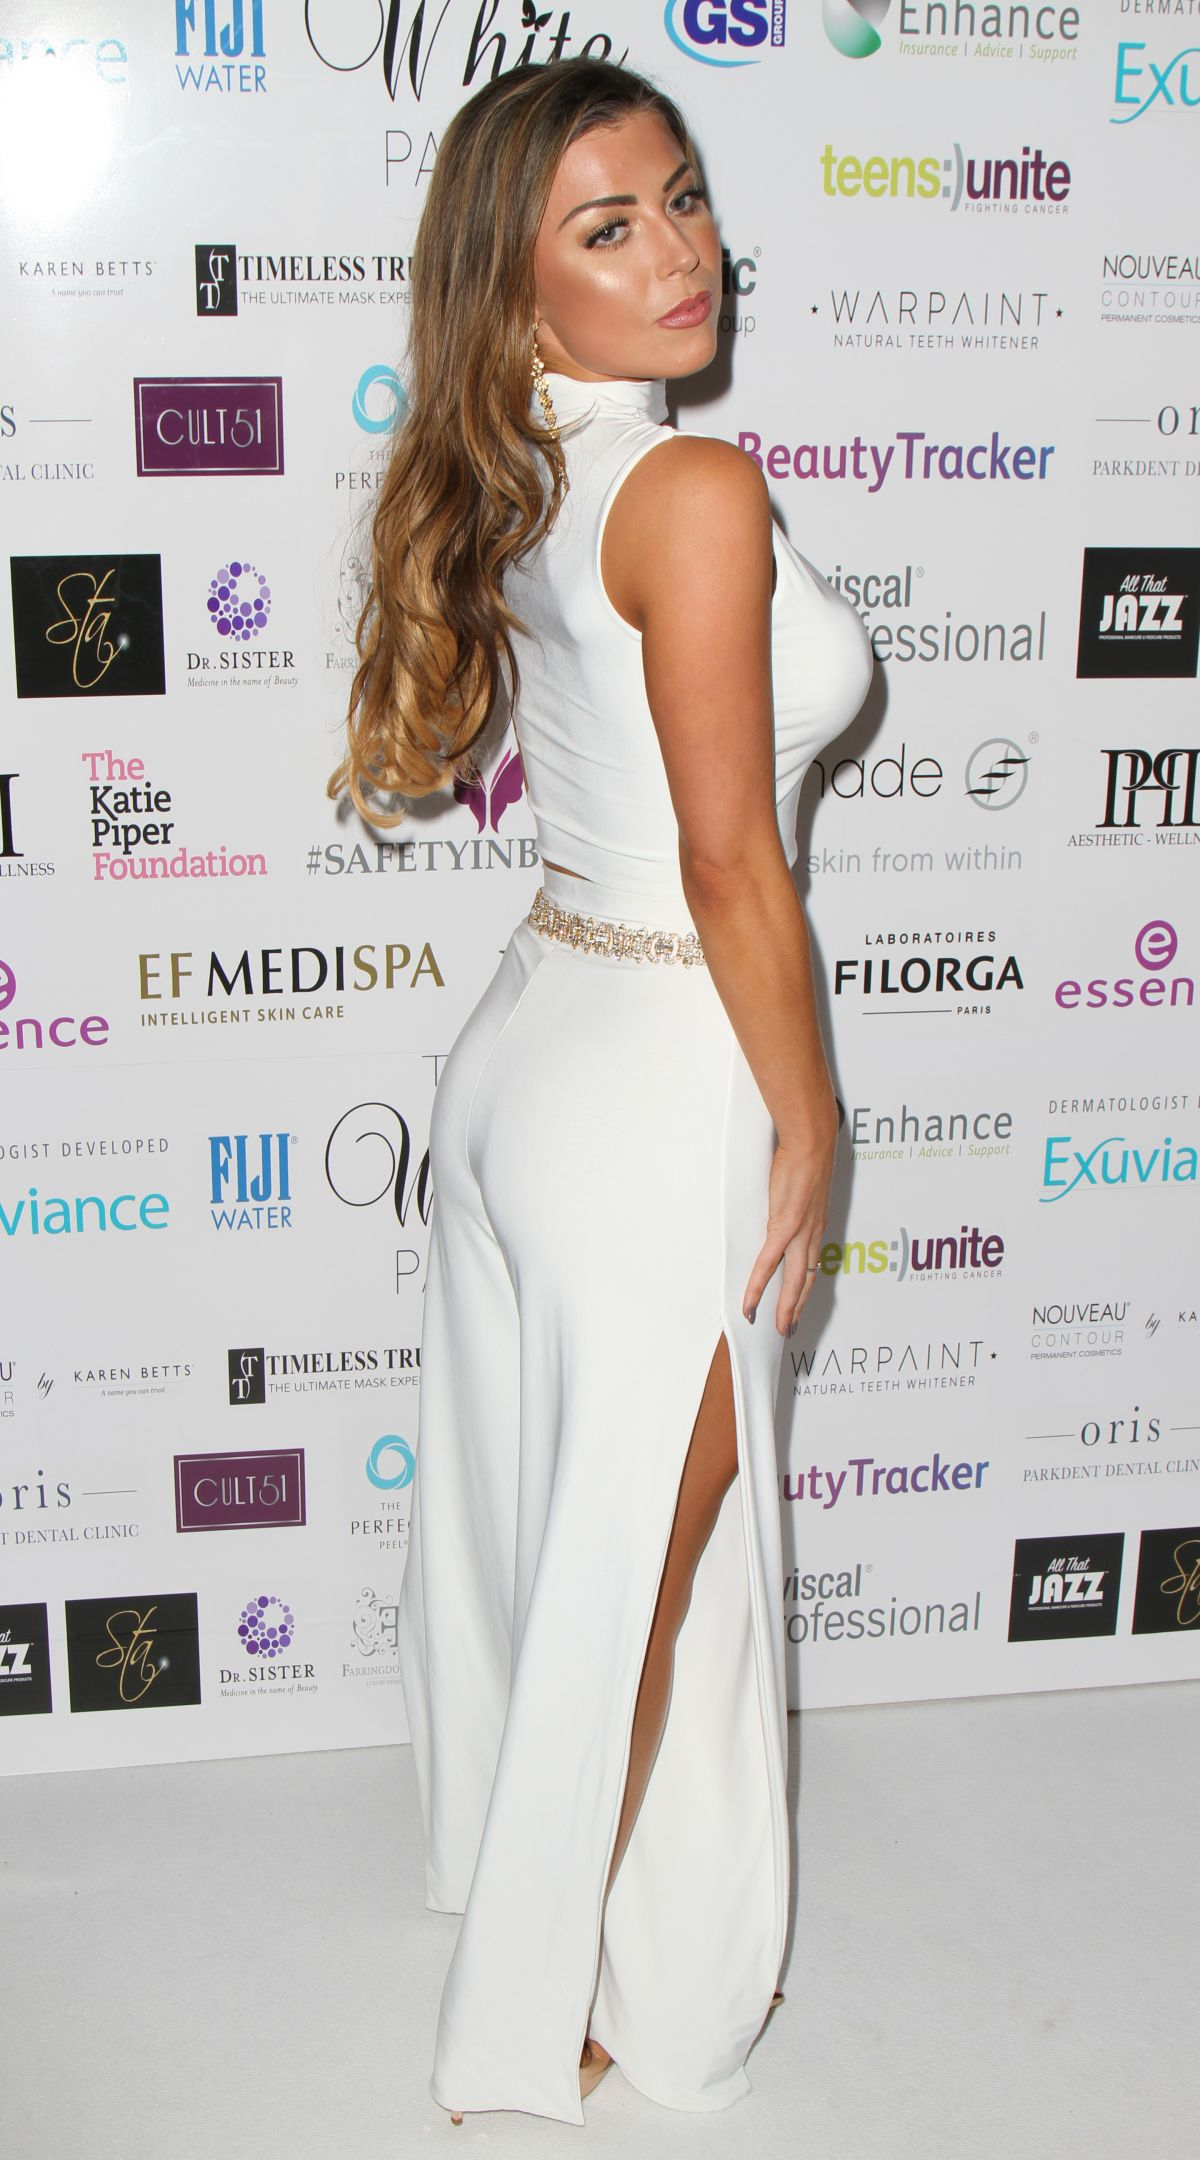 ABIGAIL CLARKE at Beauty Industry London White Party 2016 in Covent Garden 07/02/2016